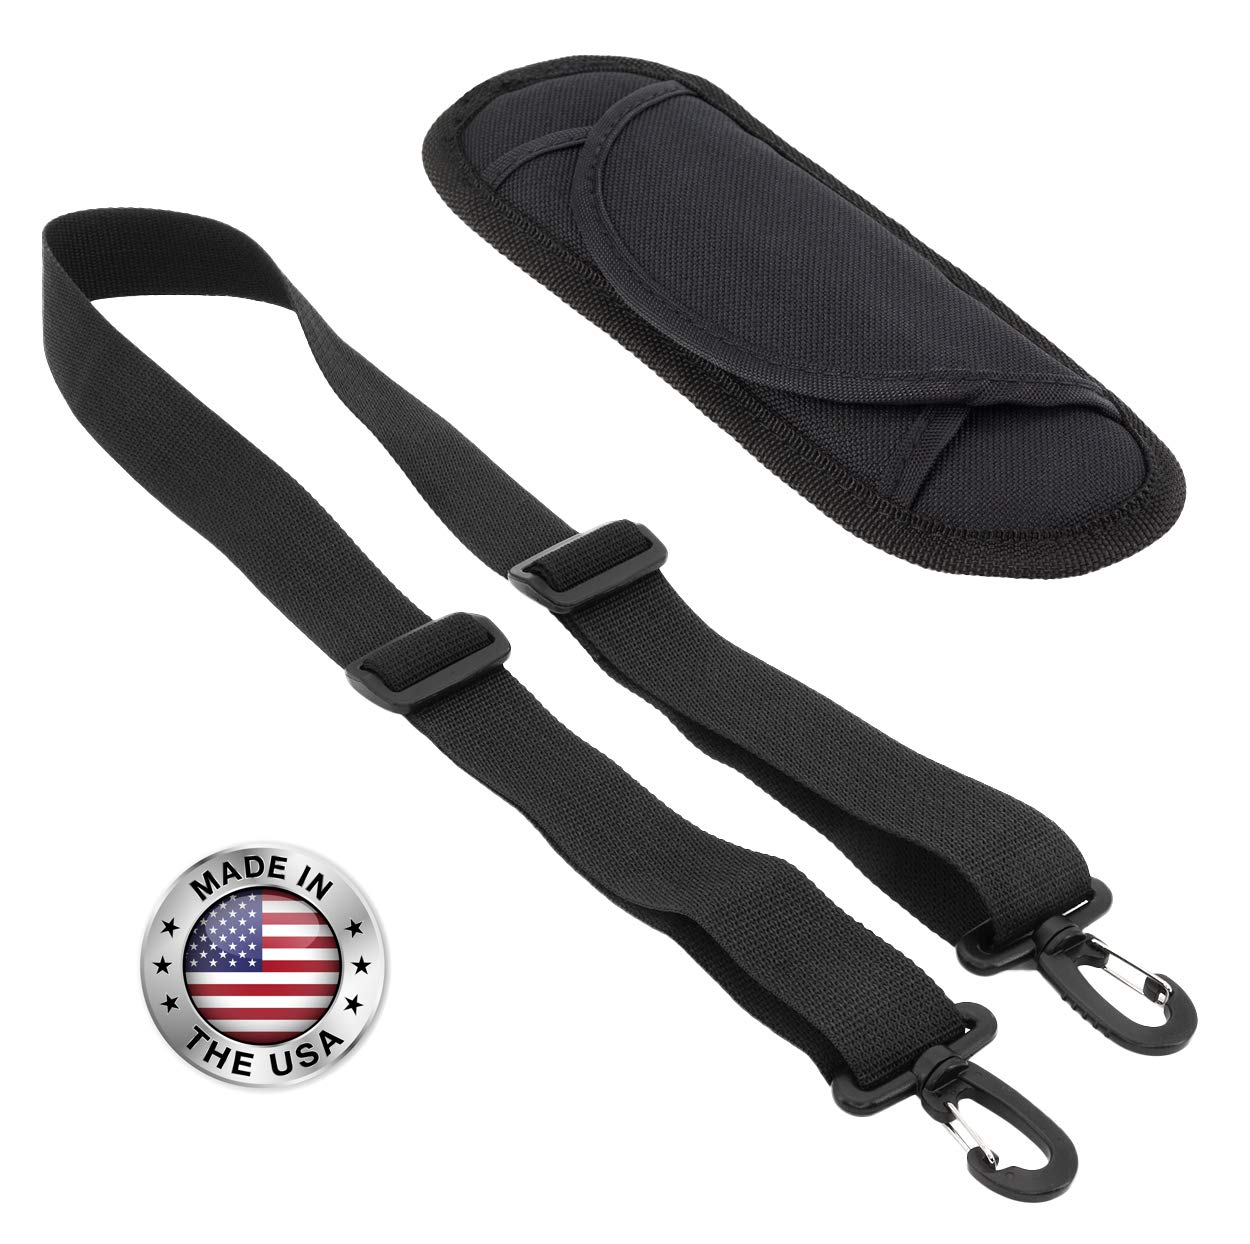 Made In USA 1.5''W x 60''L Black Plastic Hardware Replacement Travel Luggage Bag Shoulder Strap with Removable Shoulder Pad